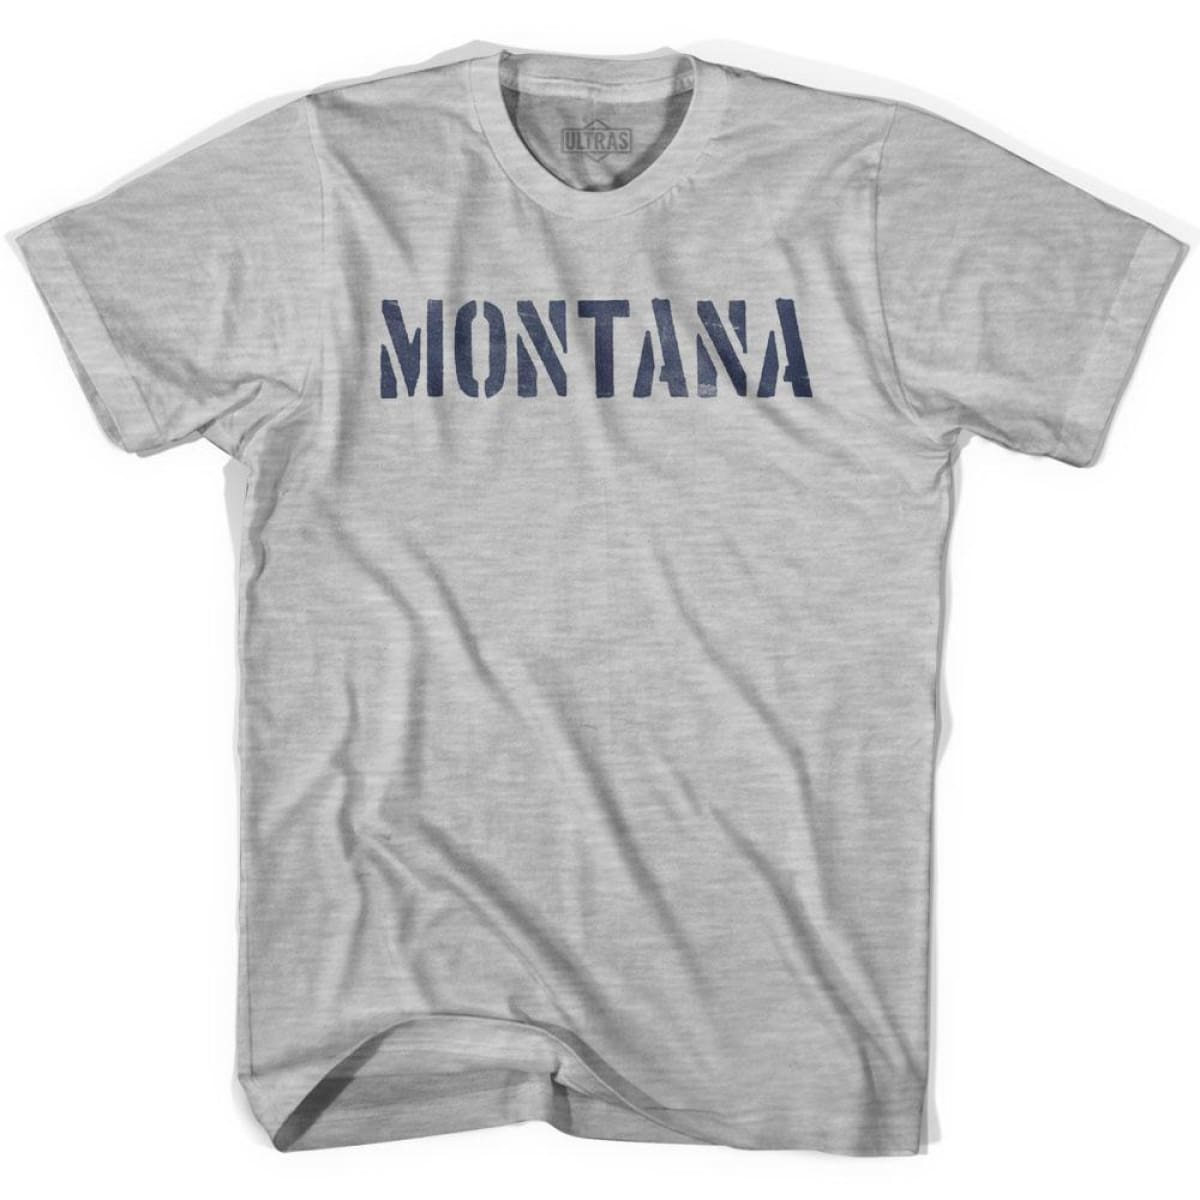 Montana State Stencil Adult Cotton T-shirt - Grey Heather / Adult Small - Stencil State